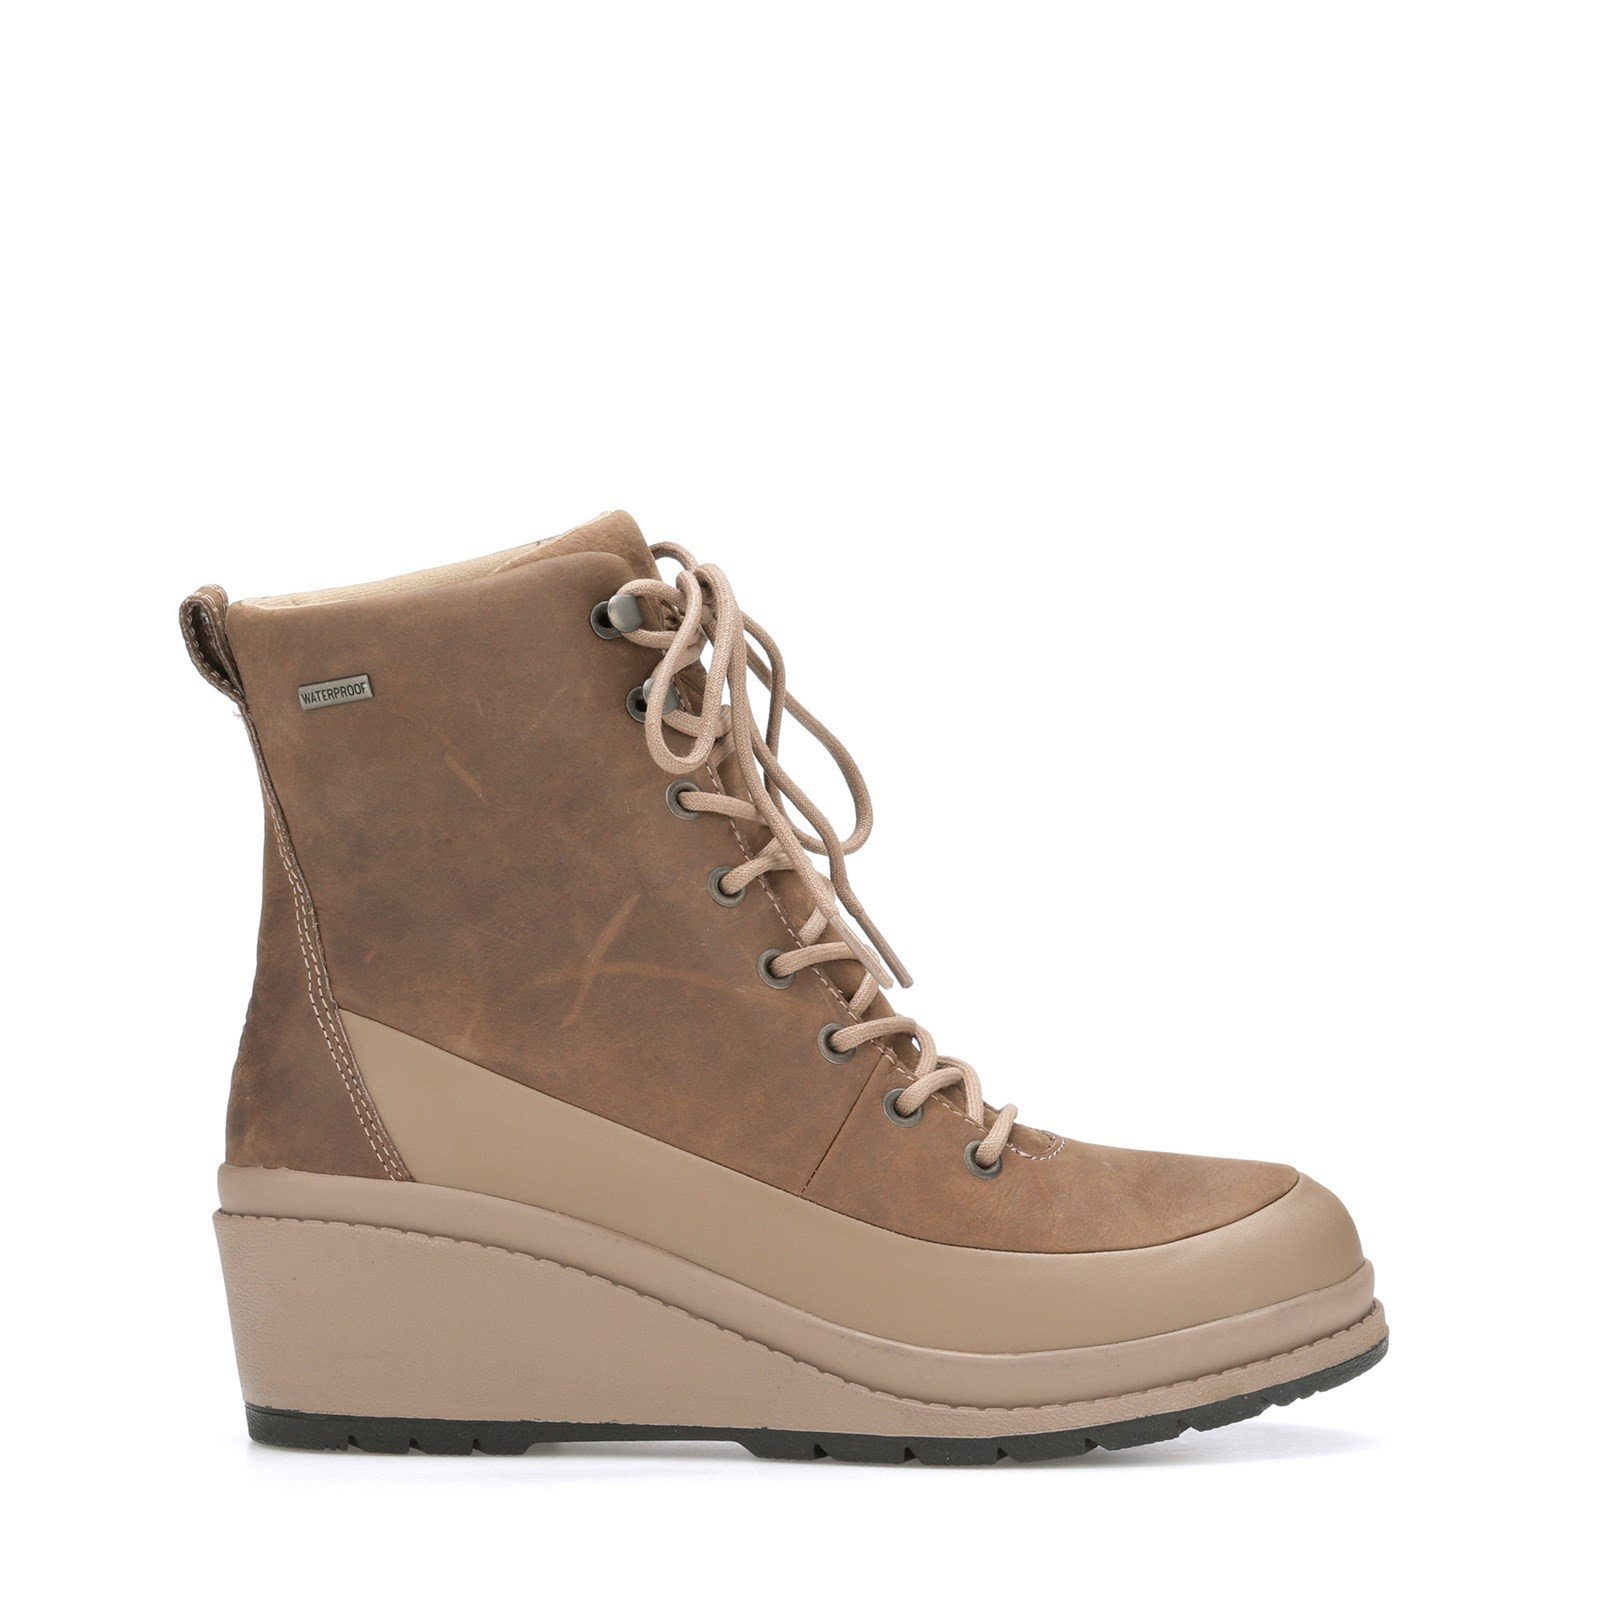 Muck Boots Women's Liberty Leather Ankle Boots Various Colours 31813 - Taupe 4